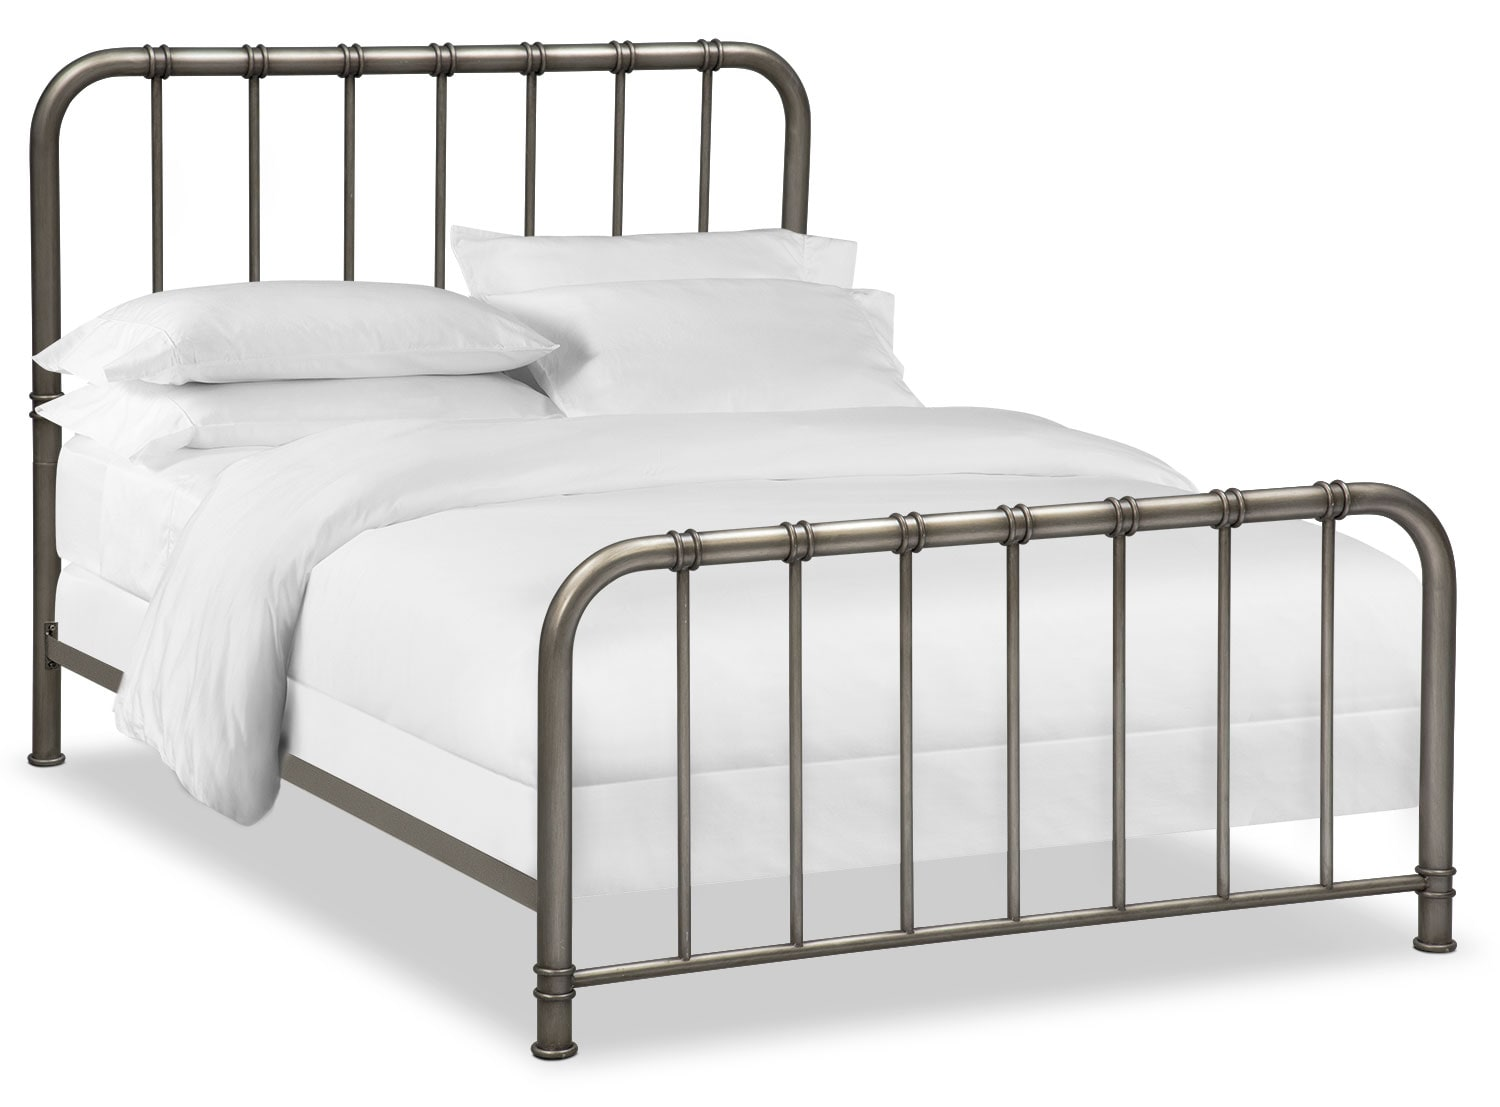 Pendleton Queen Bed - Gunmetal